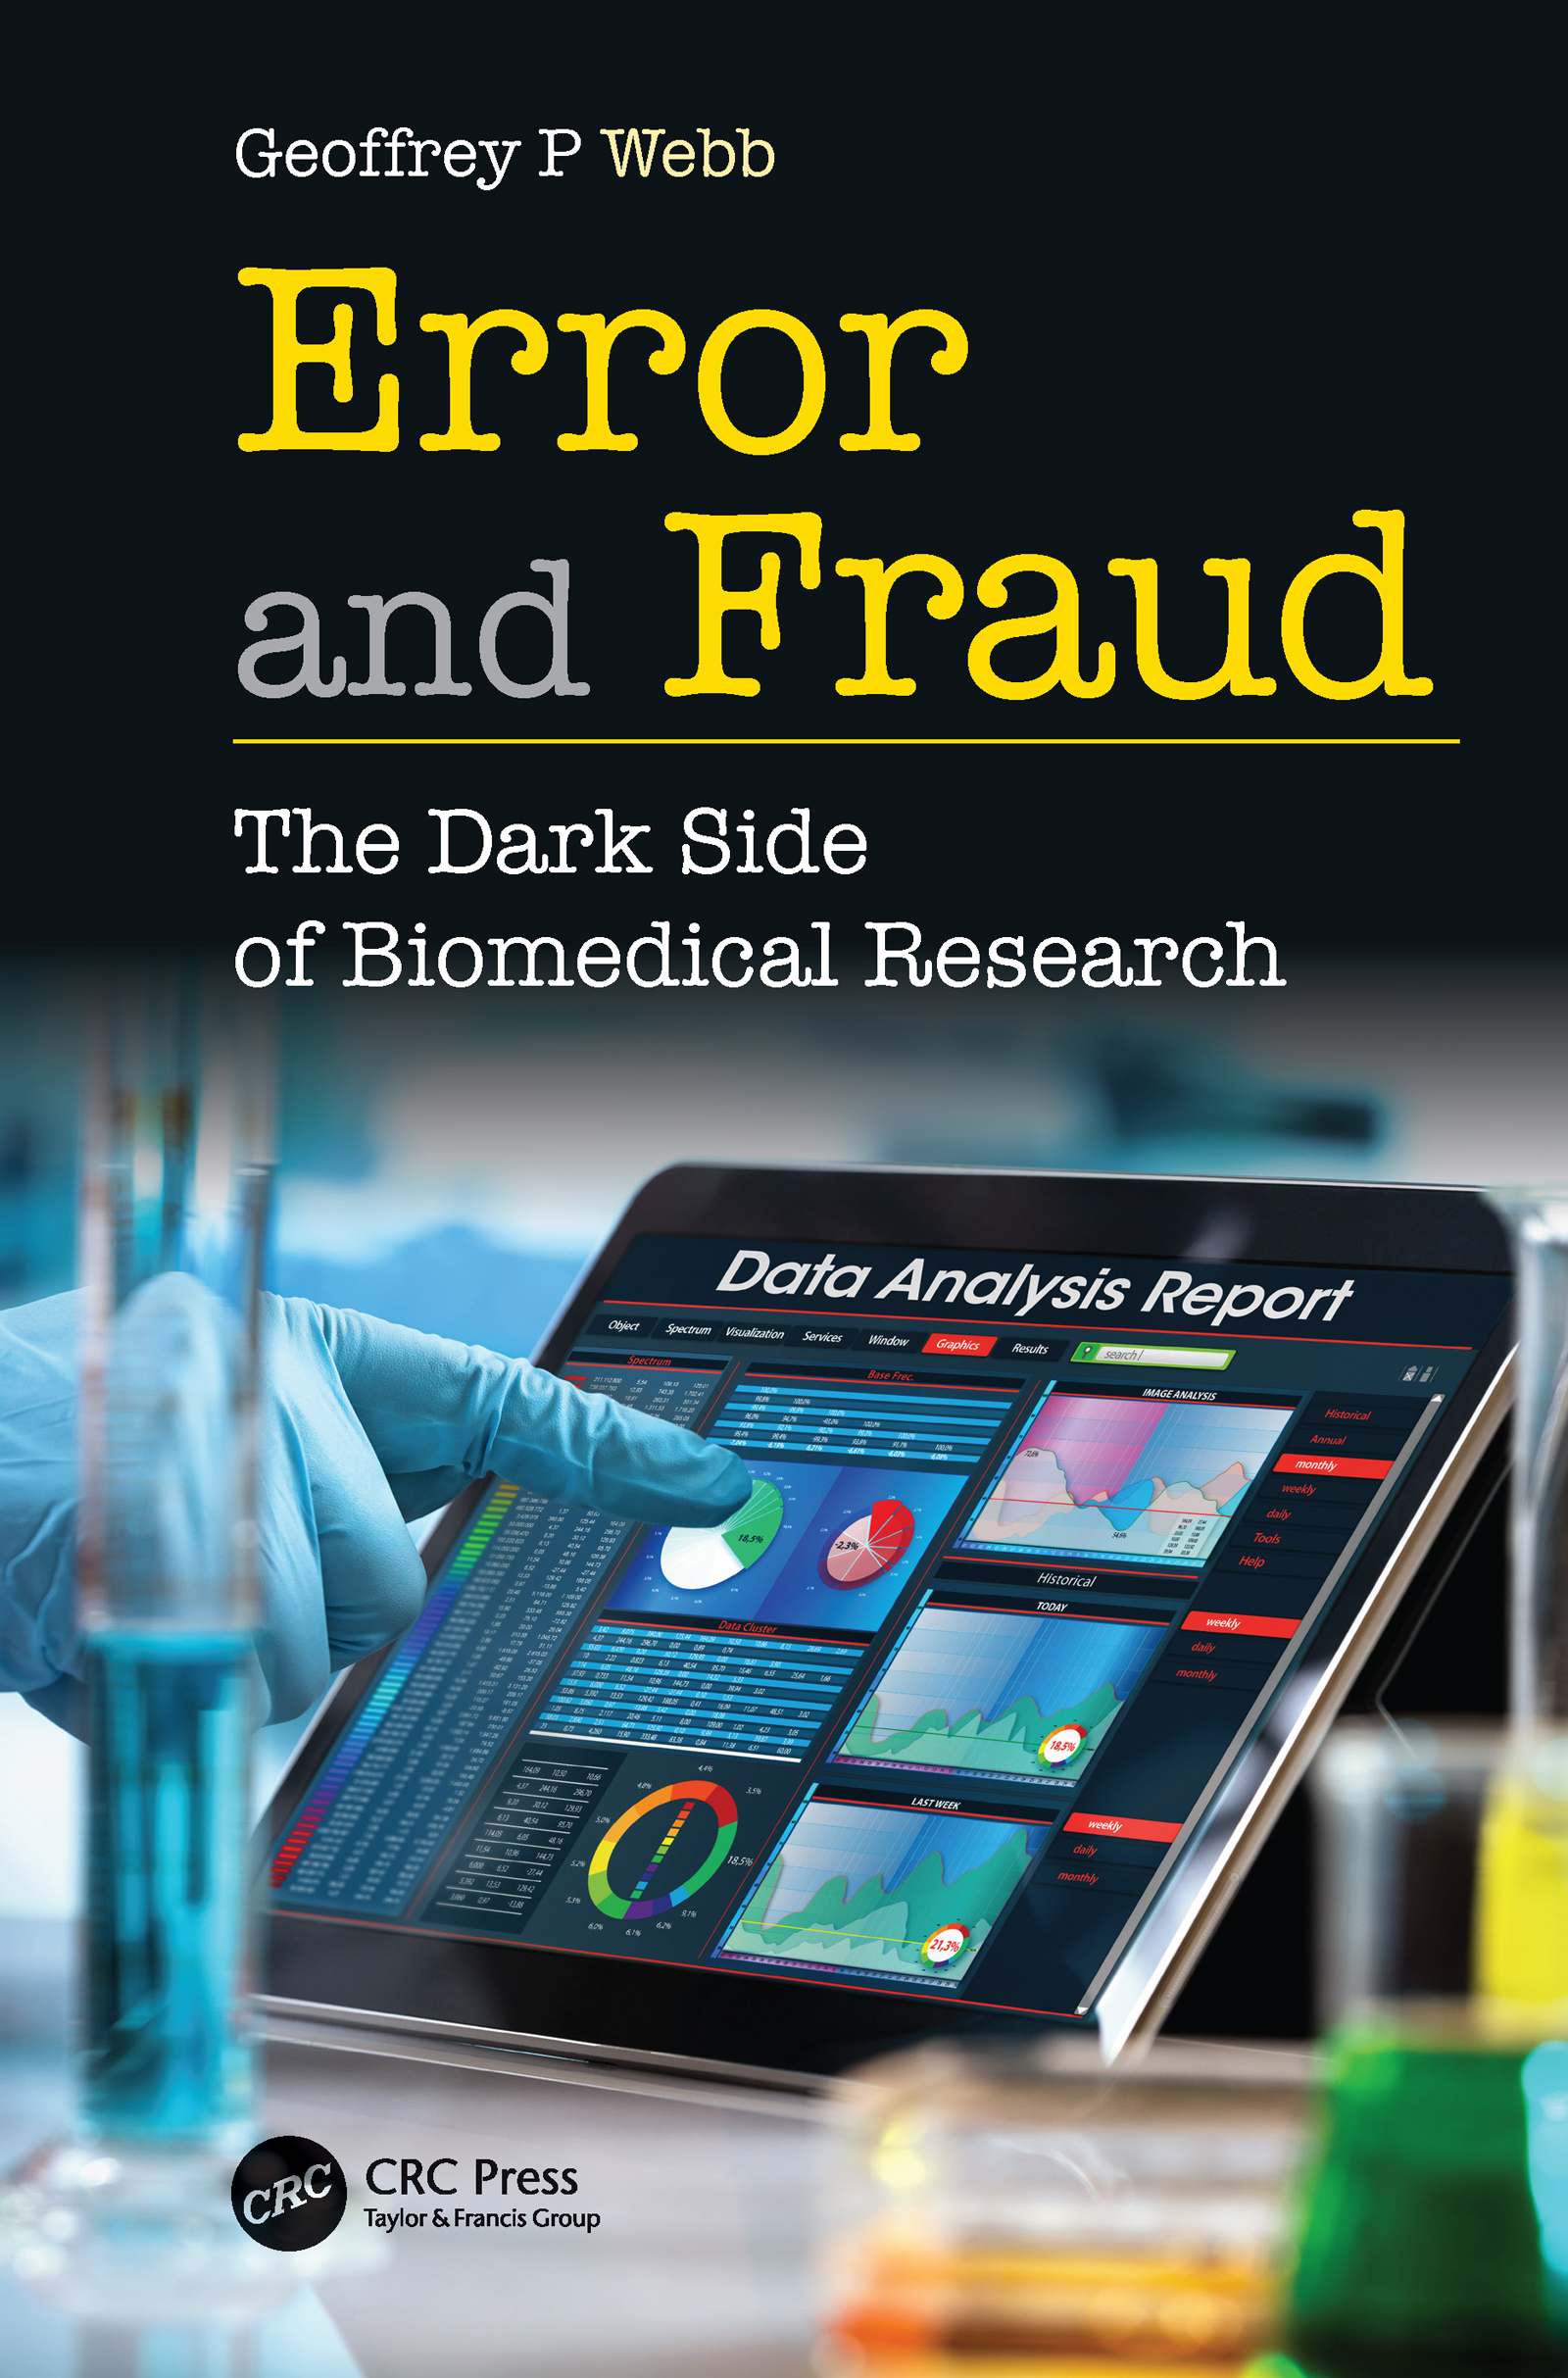 The accused – case studies of scientists accused of research misconduct